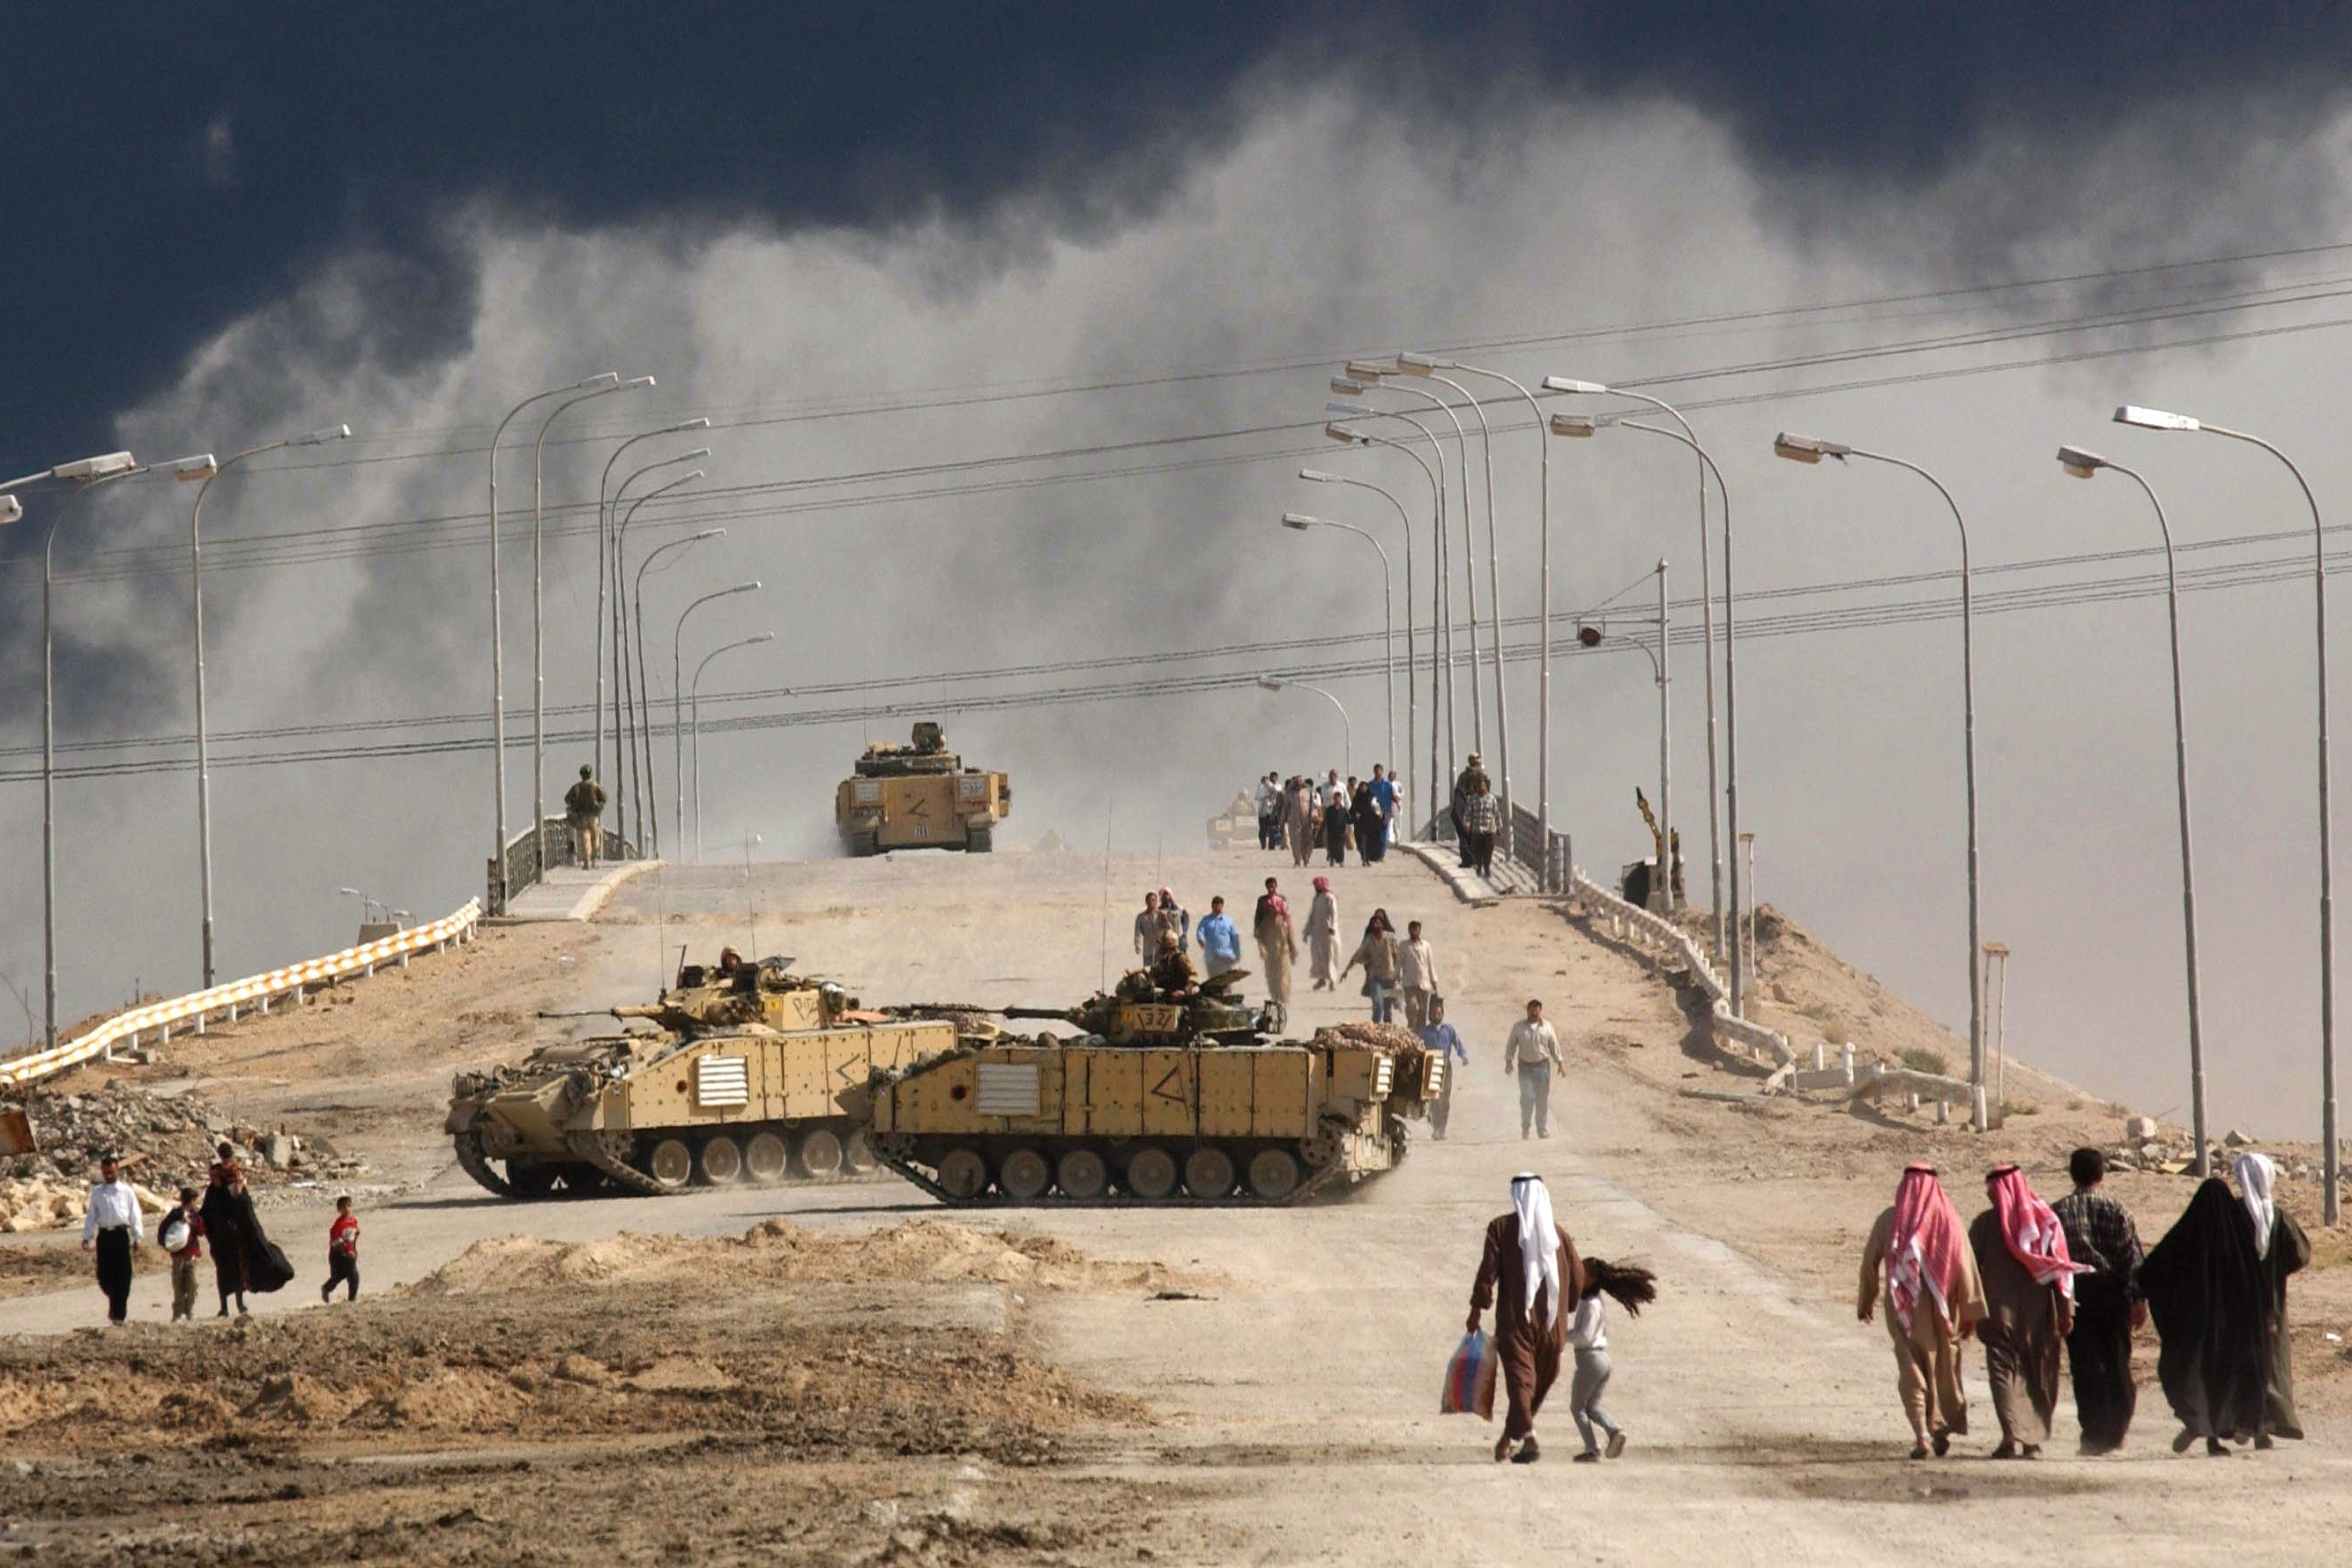 BASRA, IRAQ - MARCH 29:  Civilians on foot pass tanks on a bridge near the entrance to the besieged city of Basra March 29, 2003 in Iraq. Baath Party loyalists have taken up positions in Basra, Iraq's second largest city, making it a target of the U.S.-led war on Iraq.  (Photo by Spencer Platt/Getty Images)